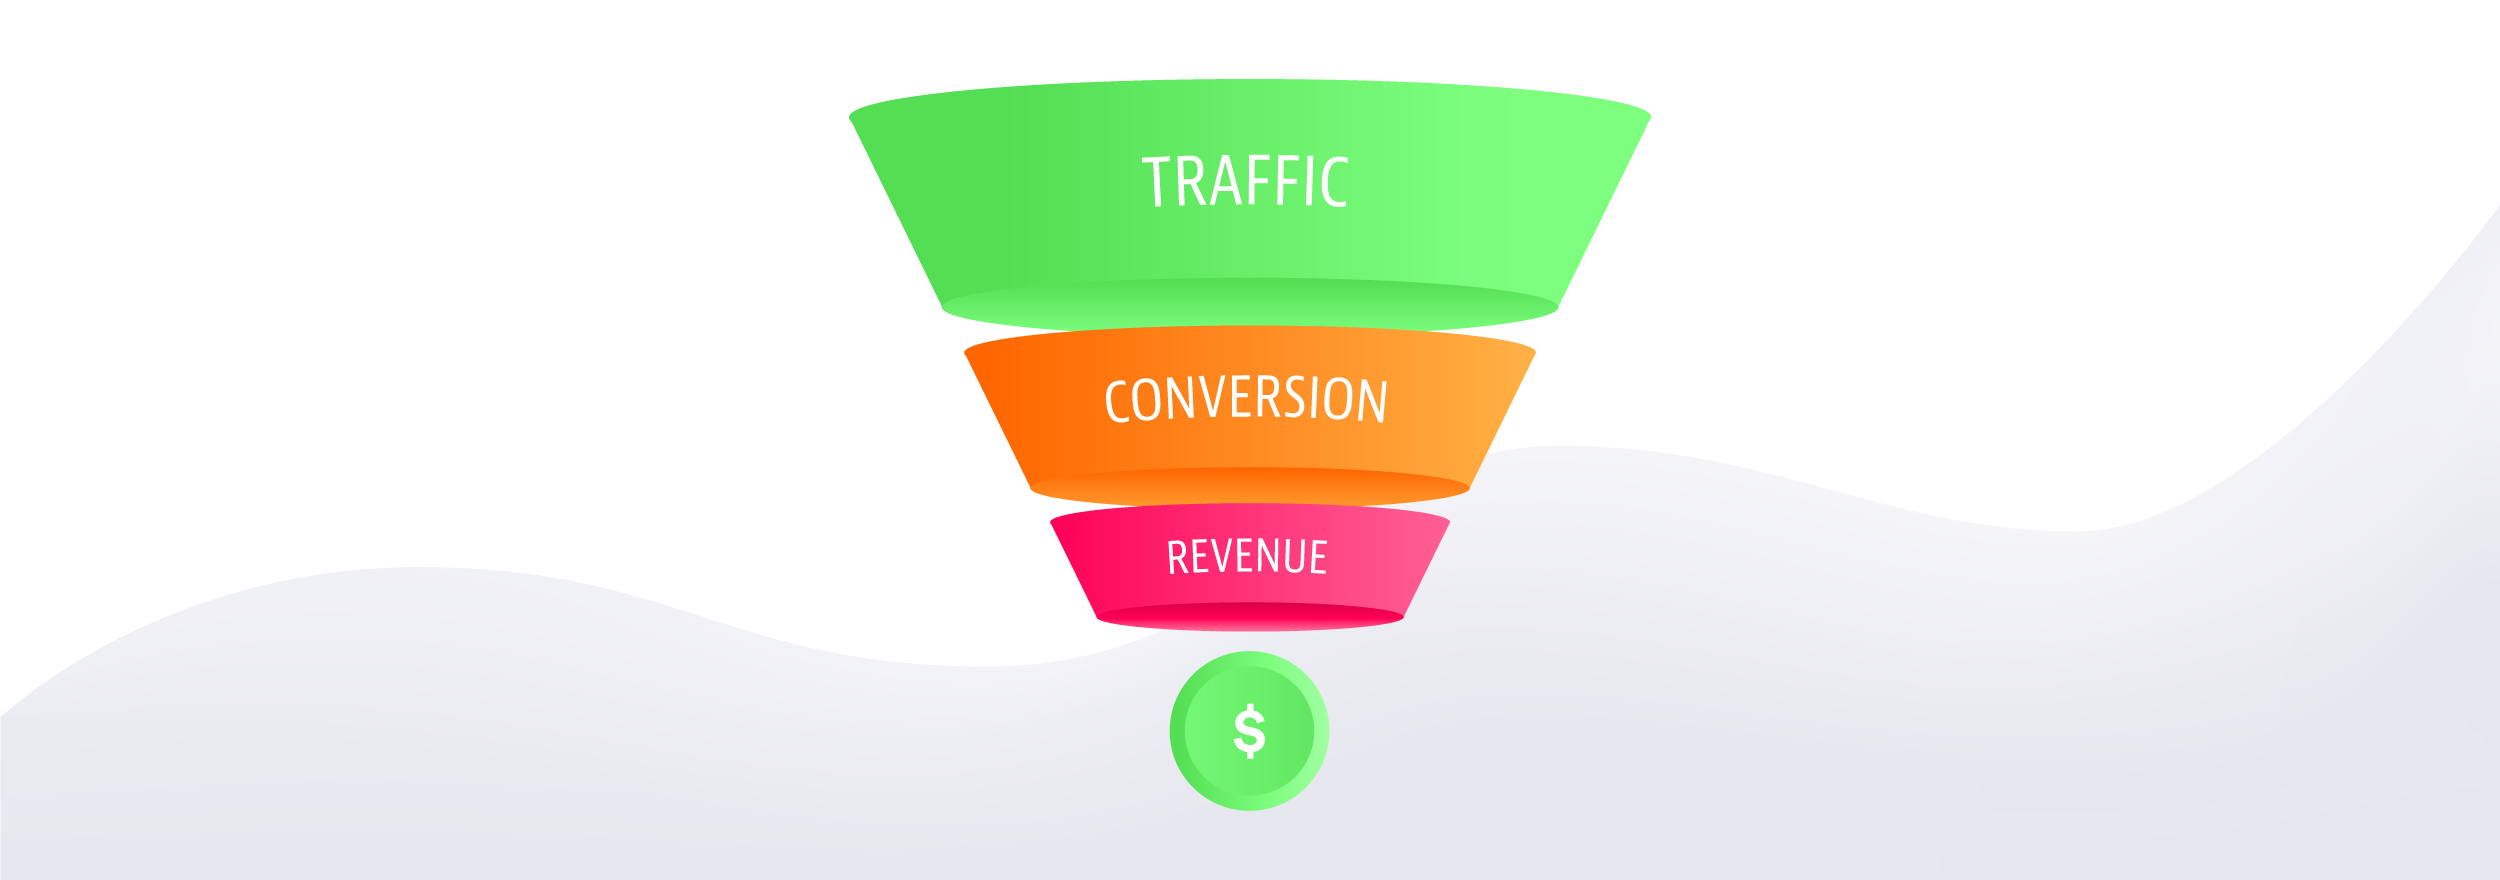 marketing funnel growth guide